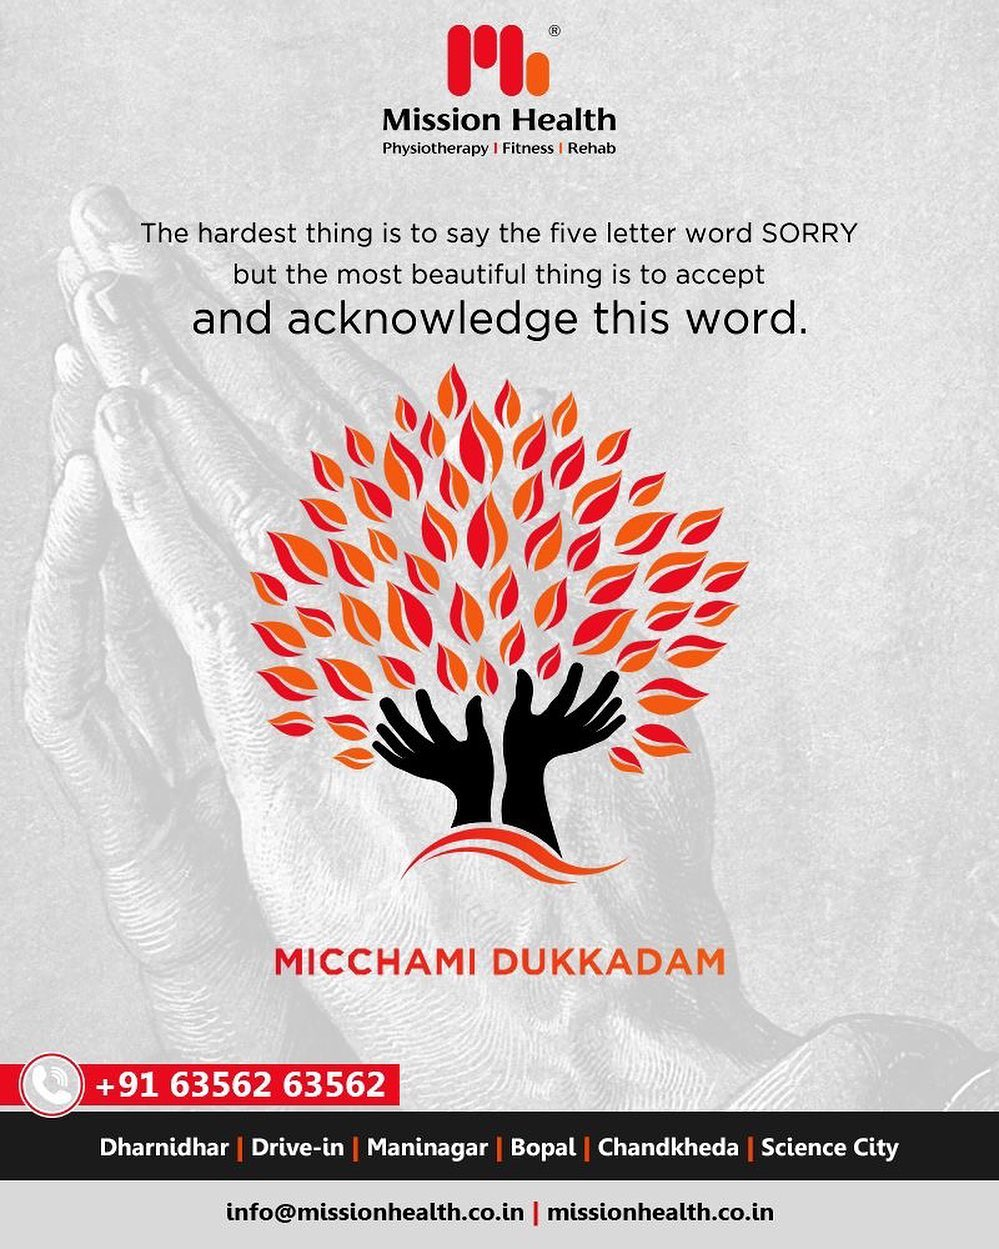 The hardest thing is to say the five-letter word SORRY but the most beautiful thing is to accept and acknowledge this word  #MicchamiDukkadam #Samvatsari #Samvatsari2019 #MissionHealth #MissionHealthIndia #AbilityClinic #MovementIsLife